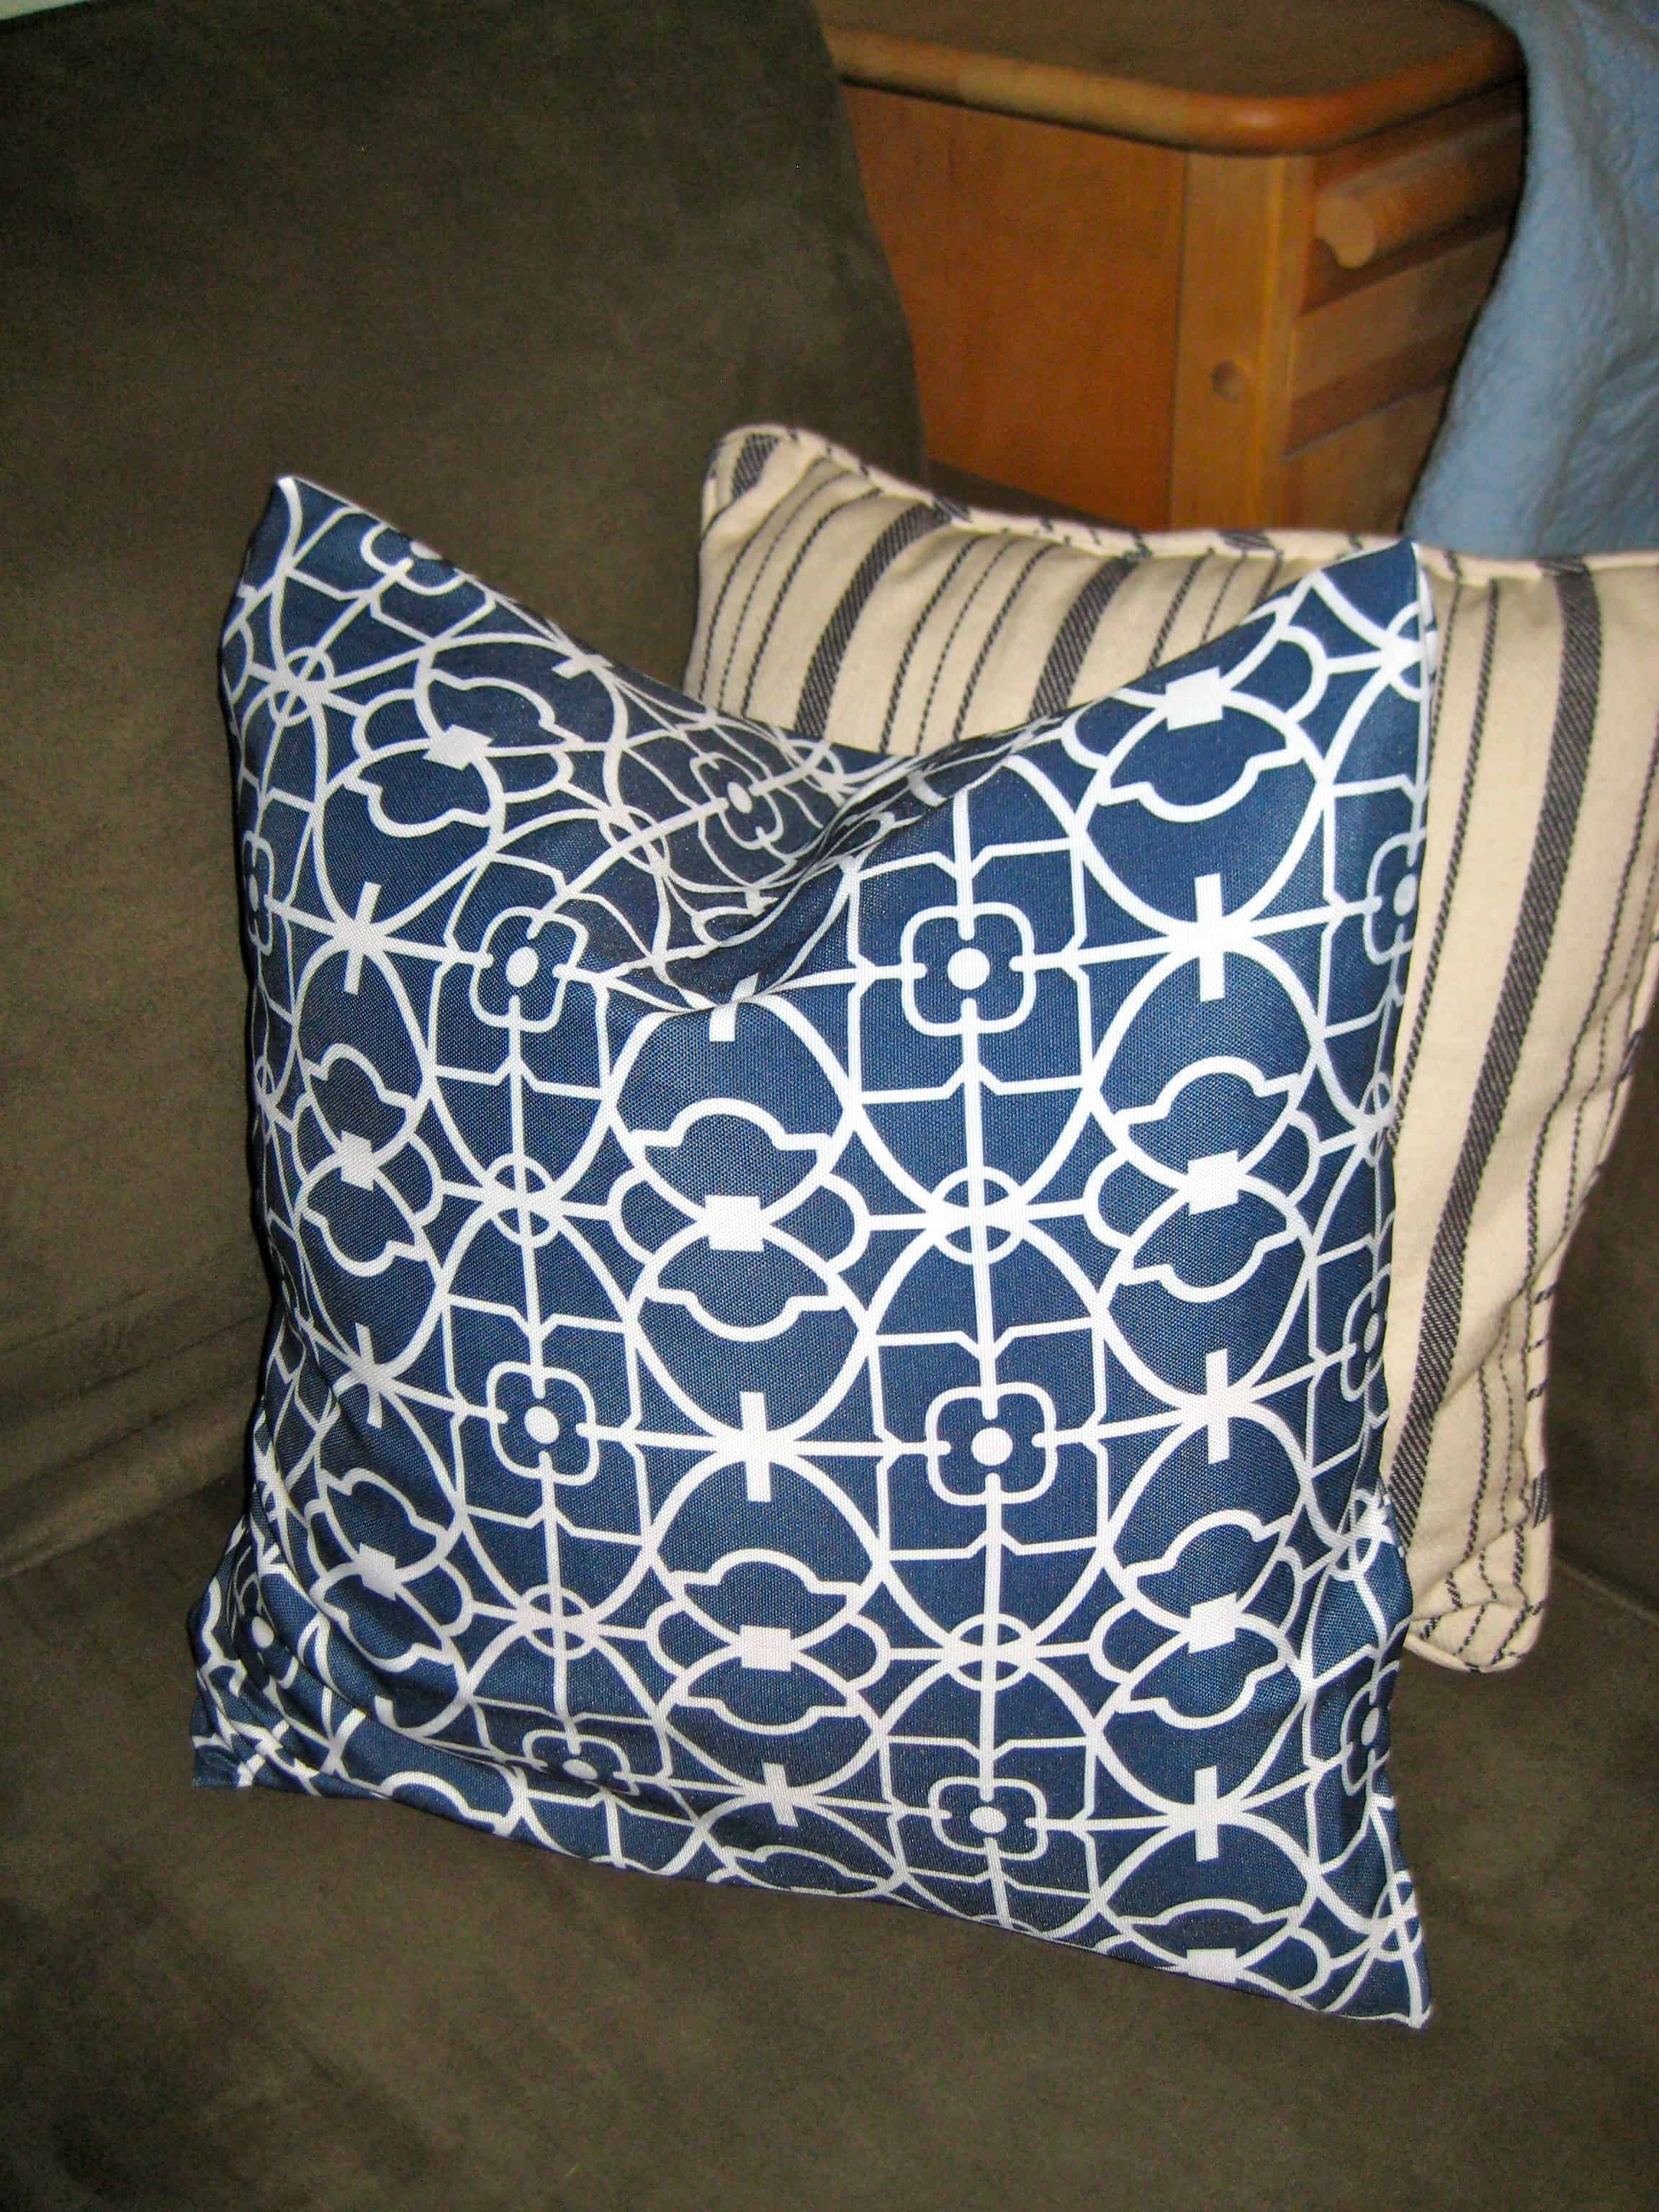 Easy To Make Throw Pillow Covers : How to Make Easy Peasy No-Sew Pillow